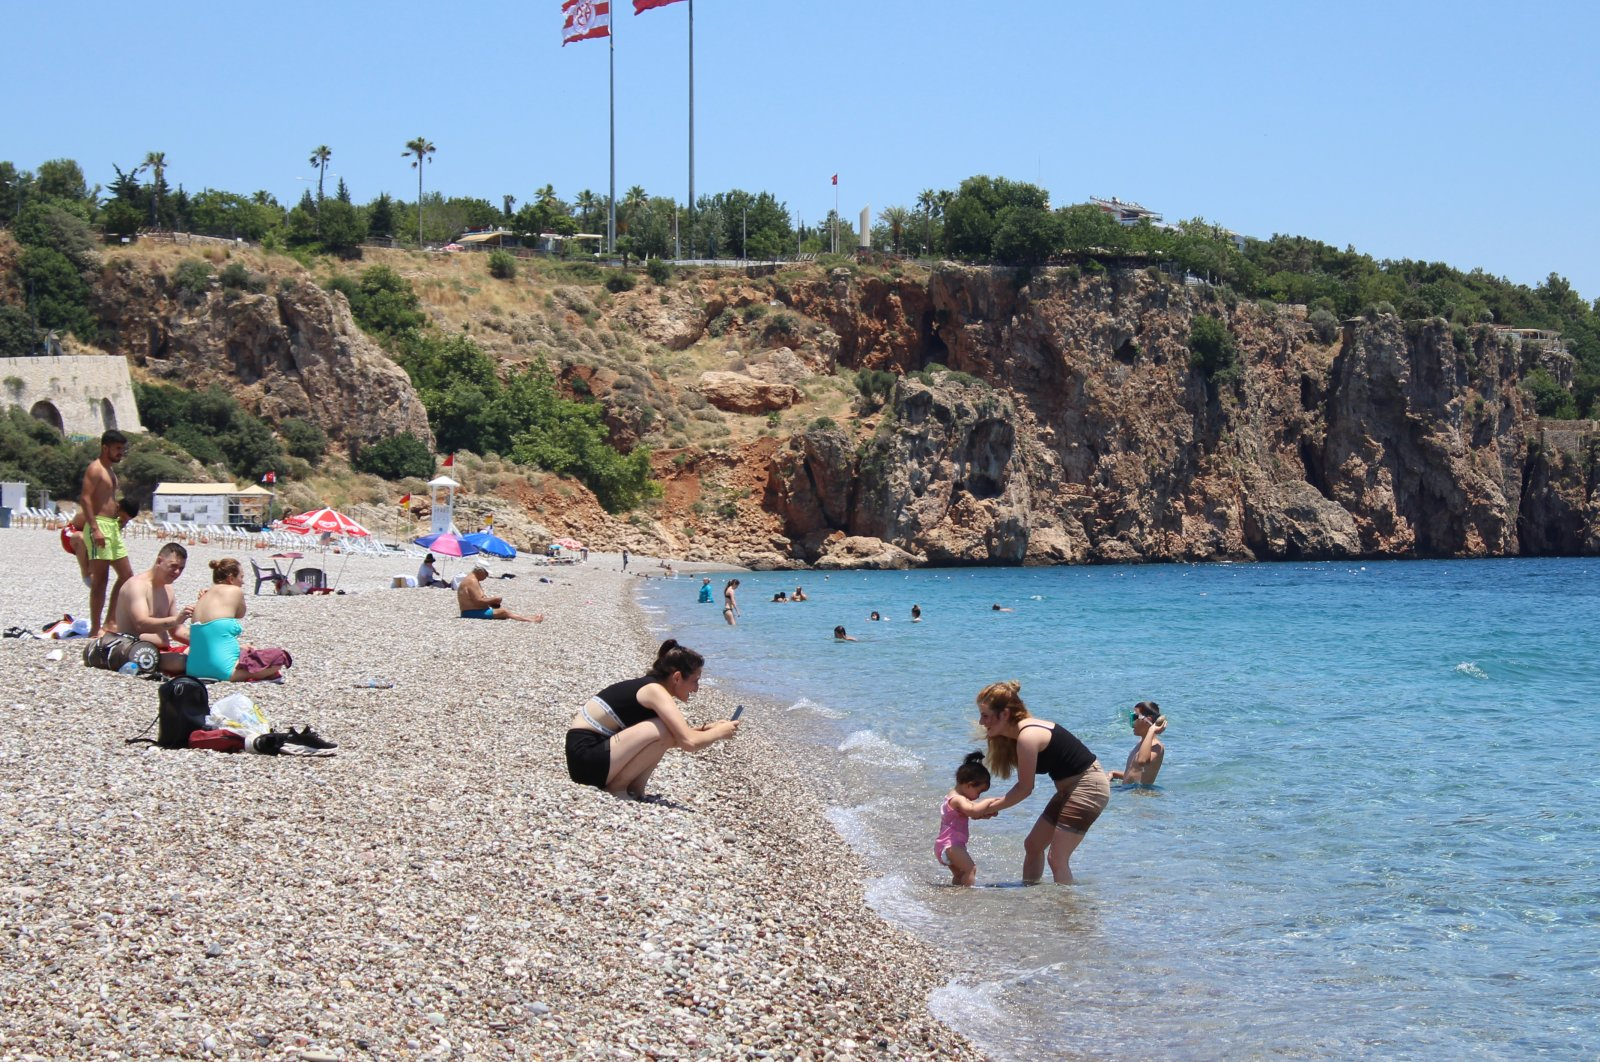 People swim and sunbathe in Antalya, Turkey, June 28, 2020. (DHA Photo)